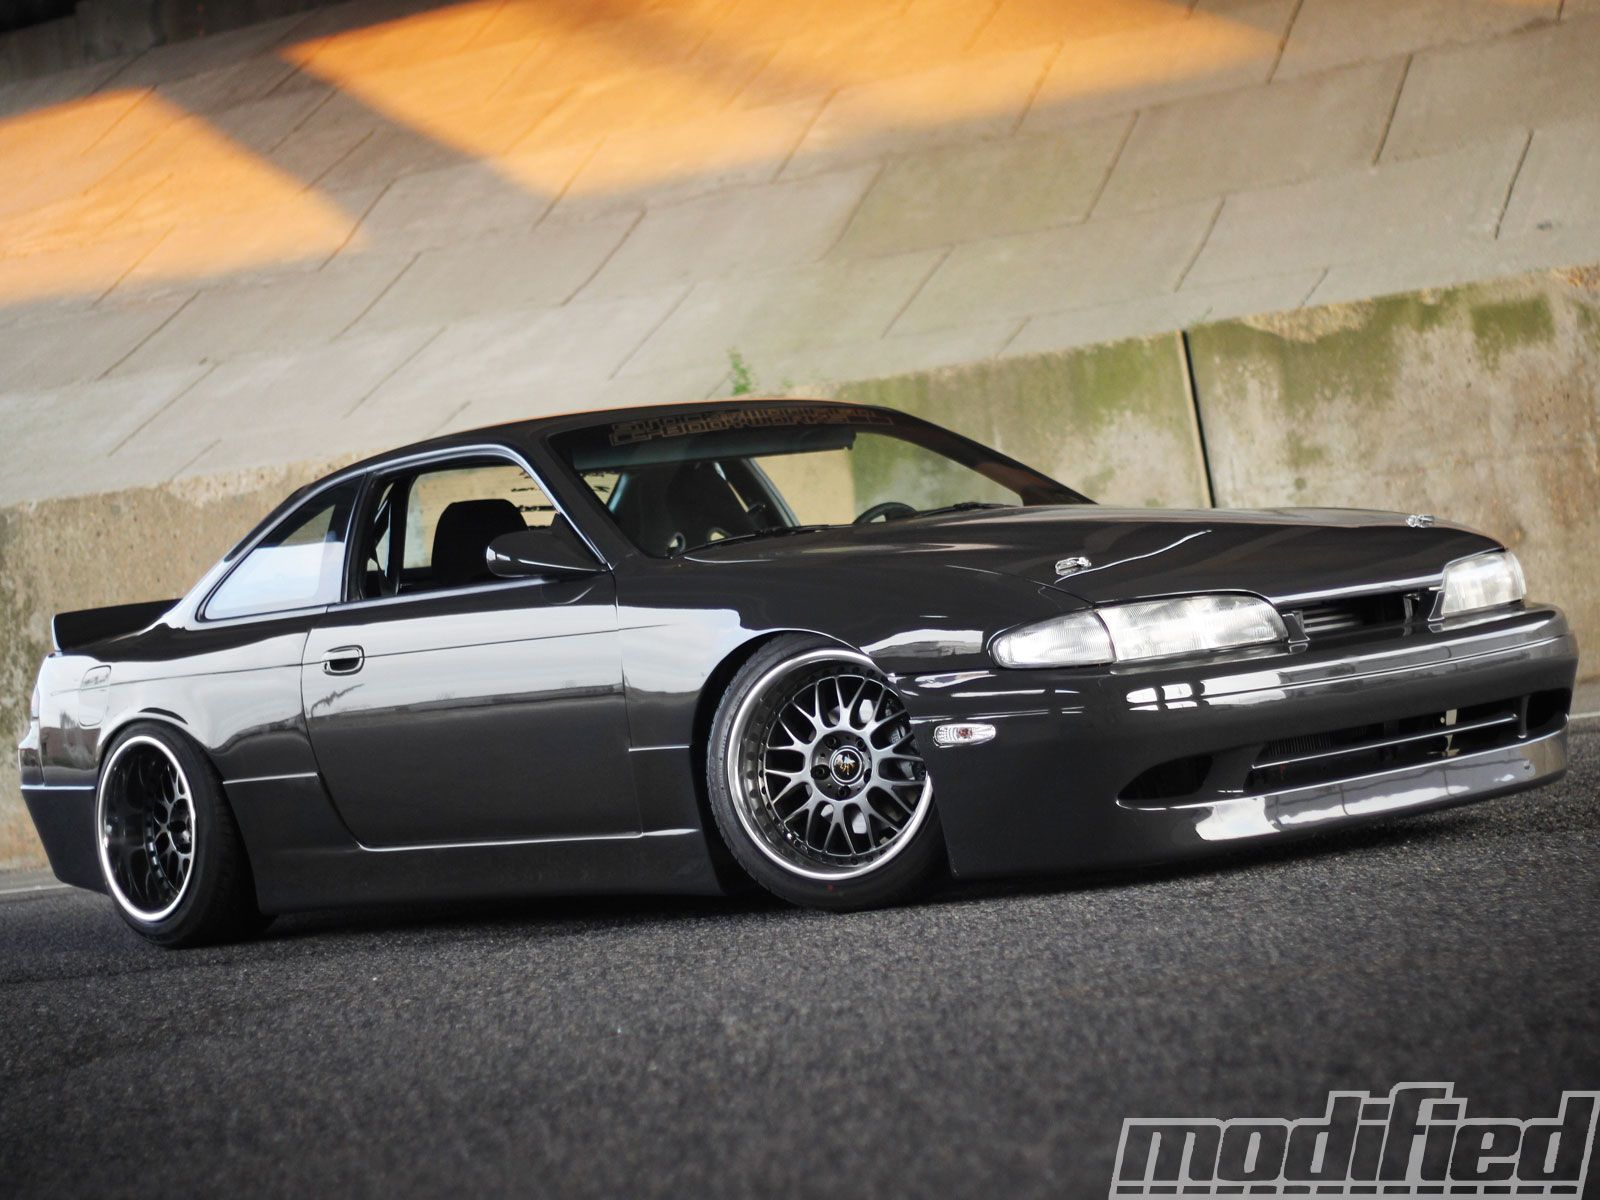 Tim Florio's 240sx image from Modified Magazine feature